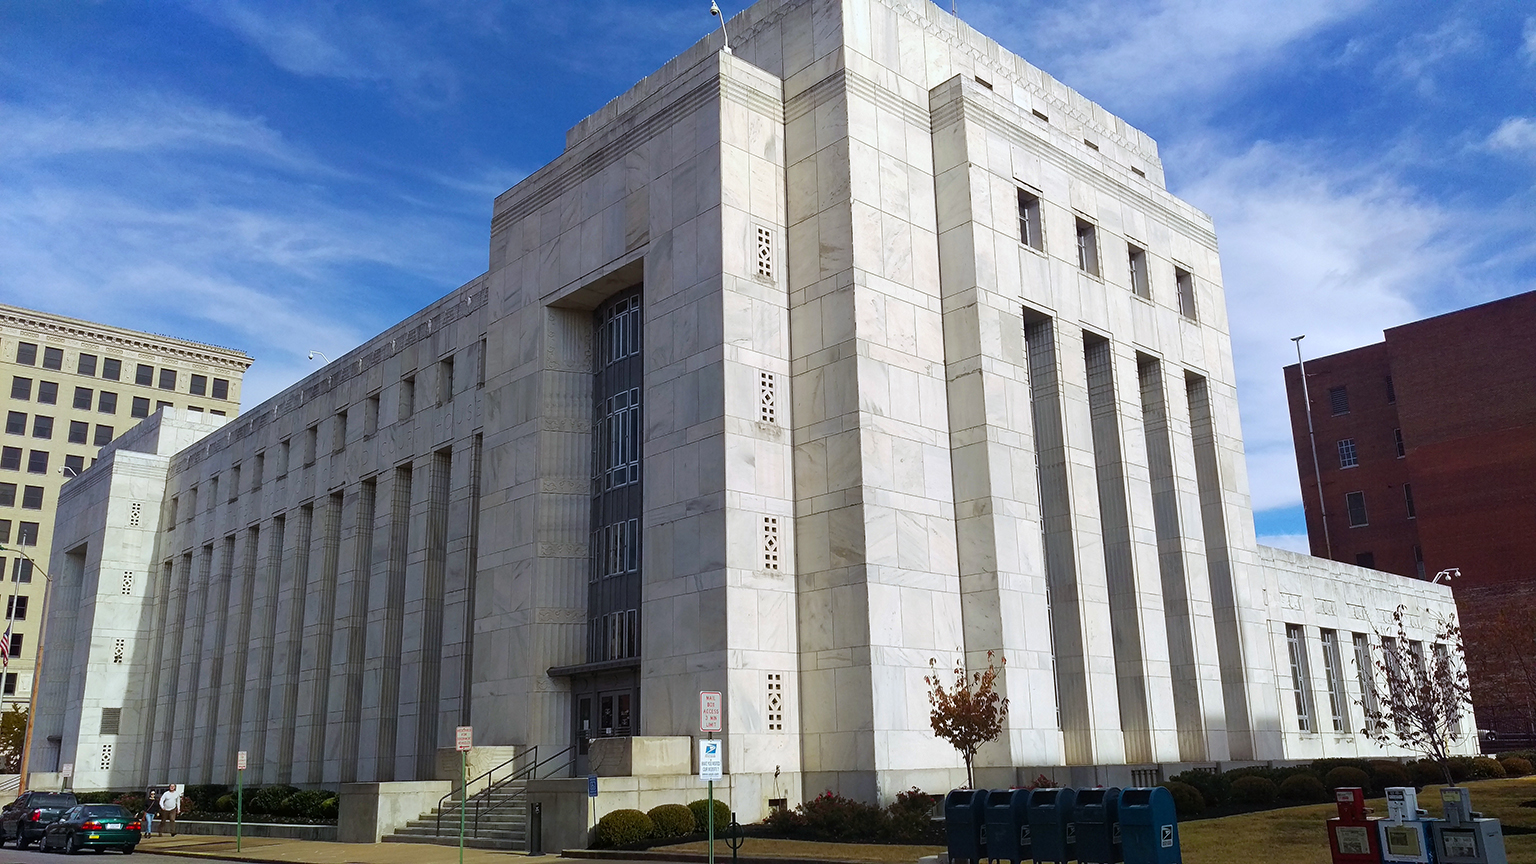 Chattanooga Post Office and Courthouse